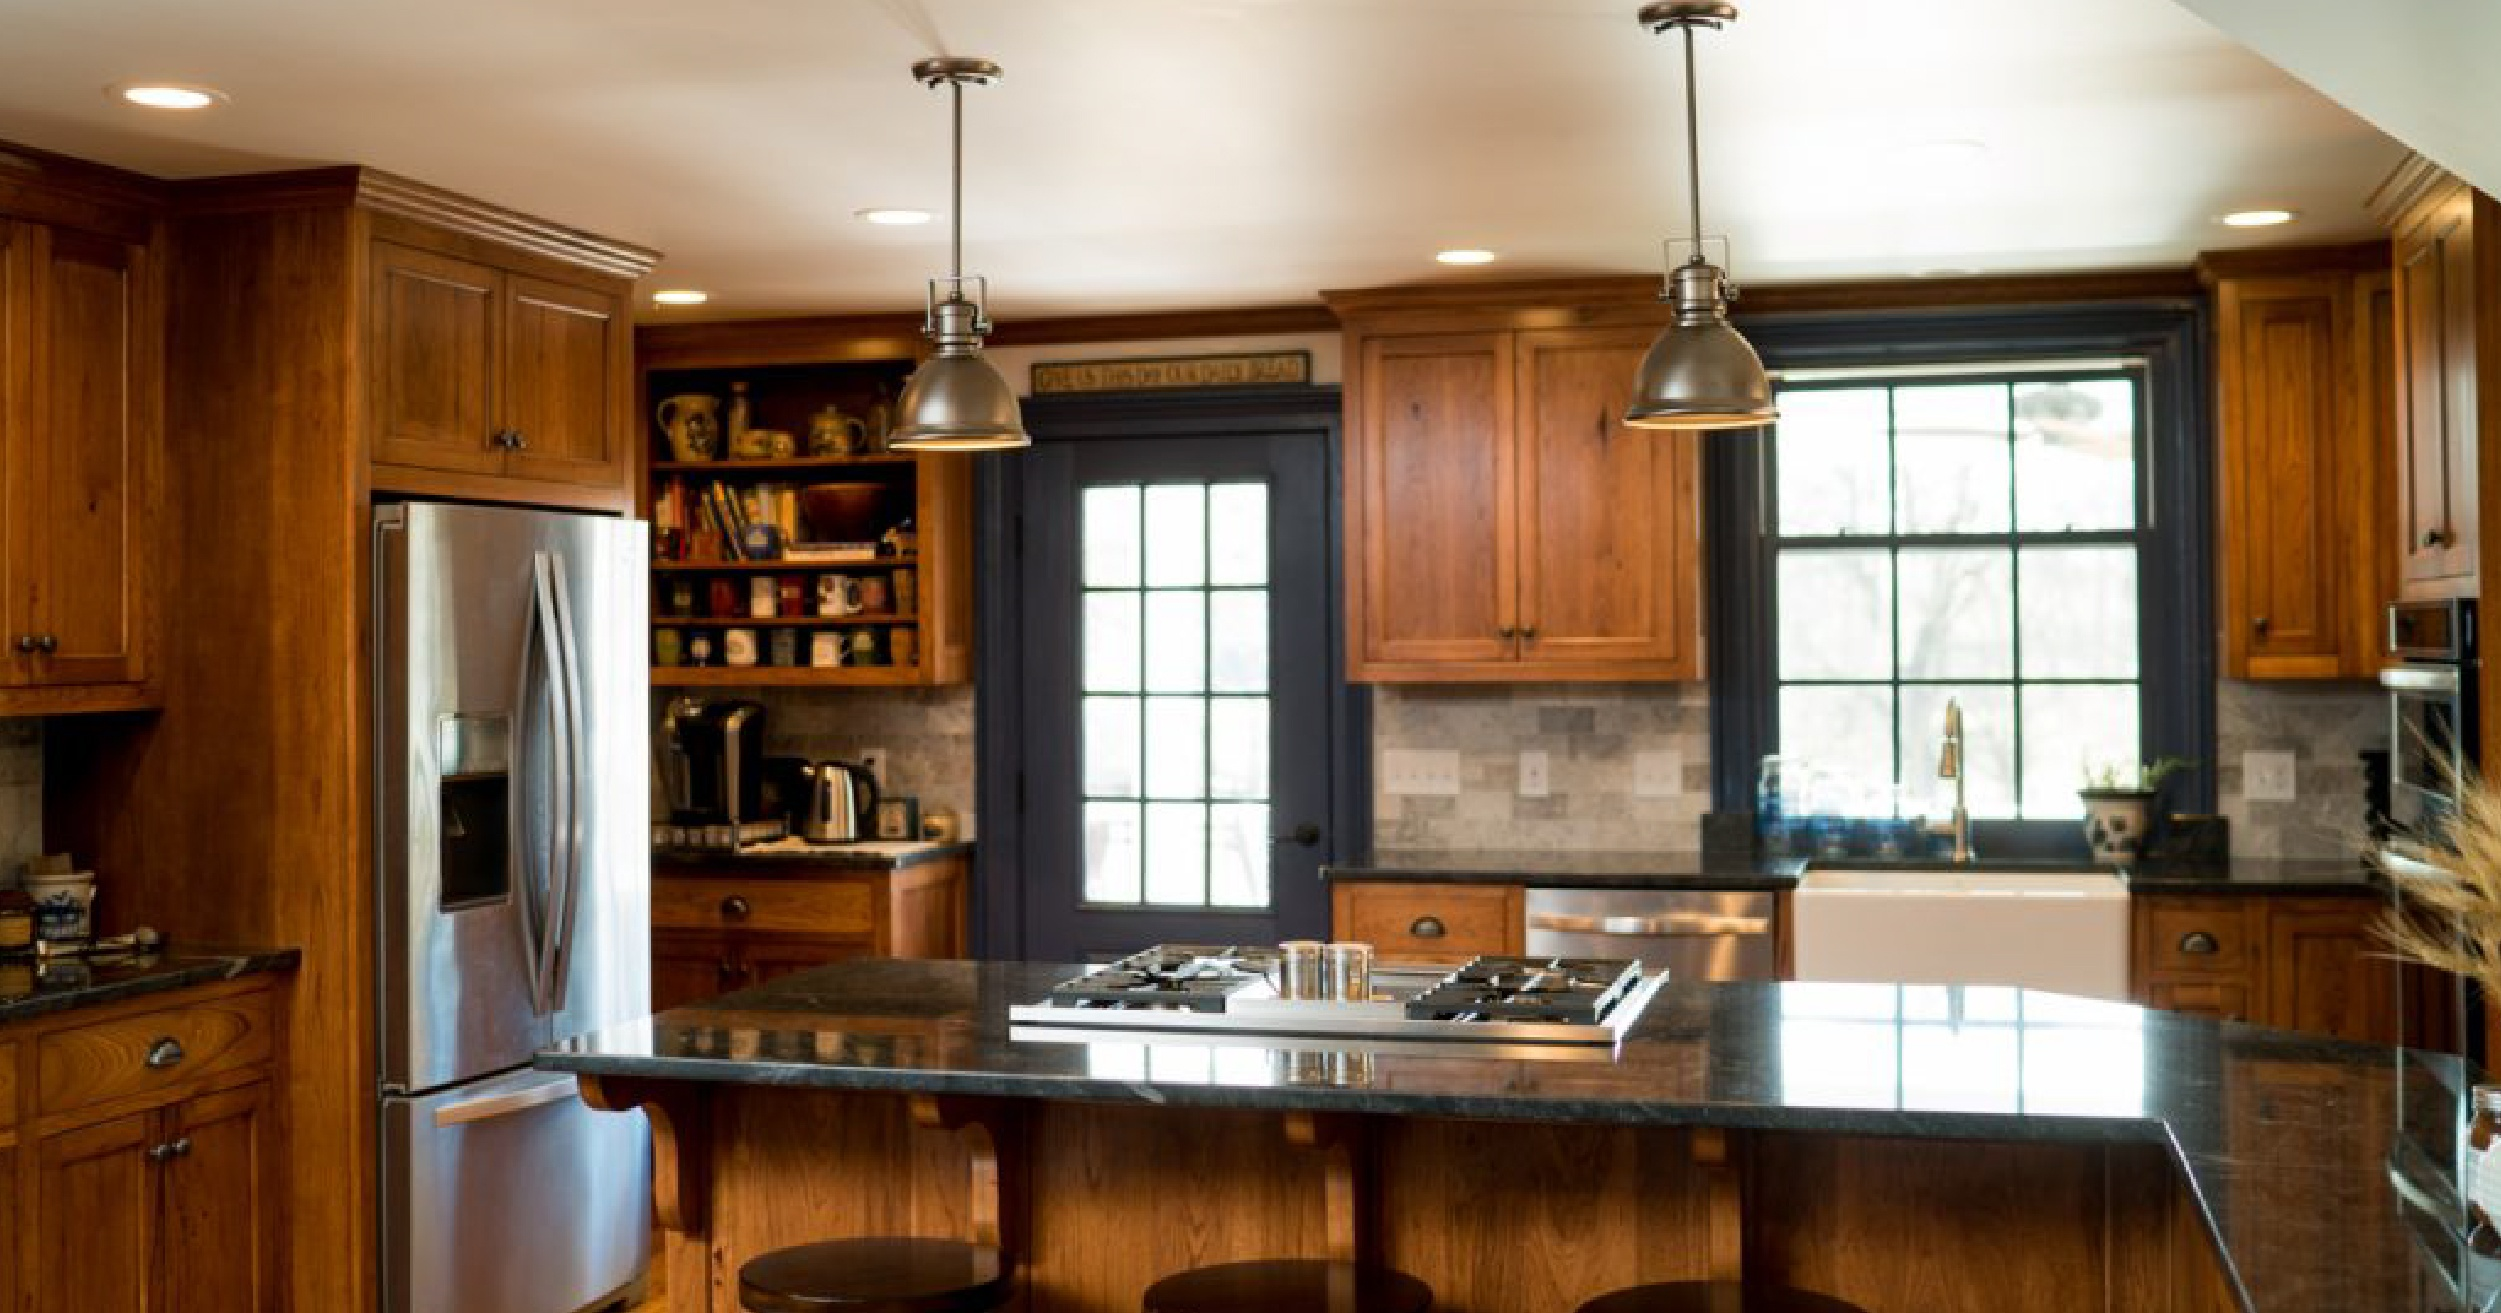 integrity-homes-kitchen-02.jpg